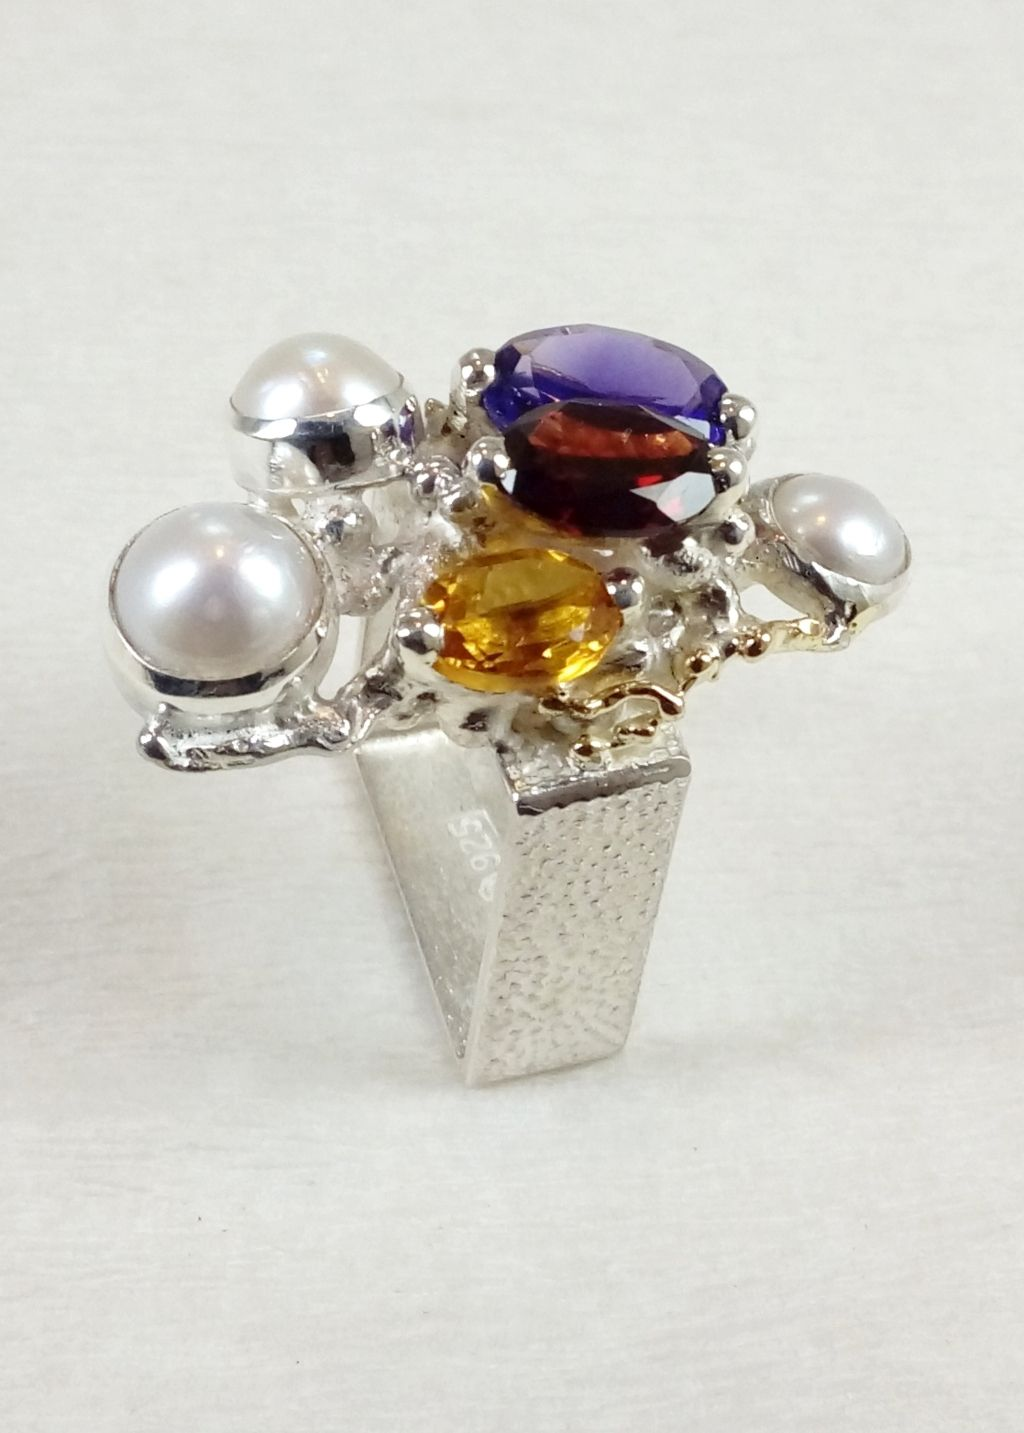 gregory pyra piro square ring 3250, fine craft gallery jewellery for sale, fine craft gallery ring for sale, artisan handcrafted rings for sale, craft gallery jewellery for sale, fine craft gallery handcrafted ring for sale, sterling silver and 14 karat gold rings, mixed metal jewellery, handcrafted ring with amethyst and garnet, handcrafted ring with citrine and garnet, handcrafted ring with amethyst and citrine